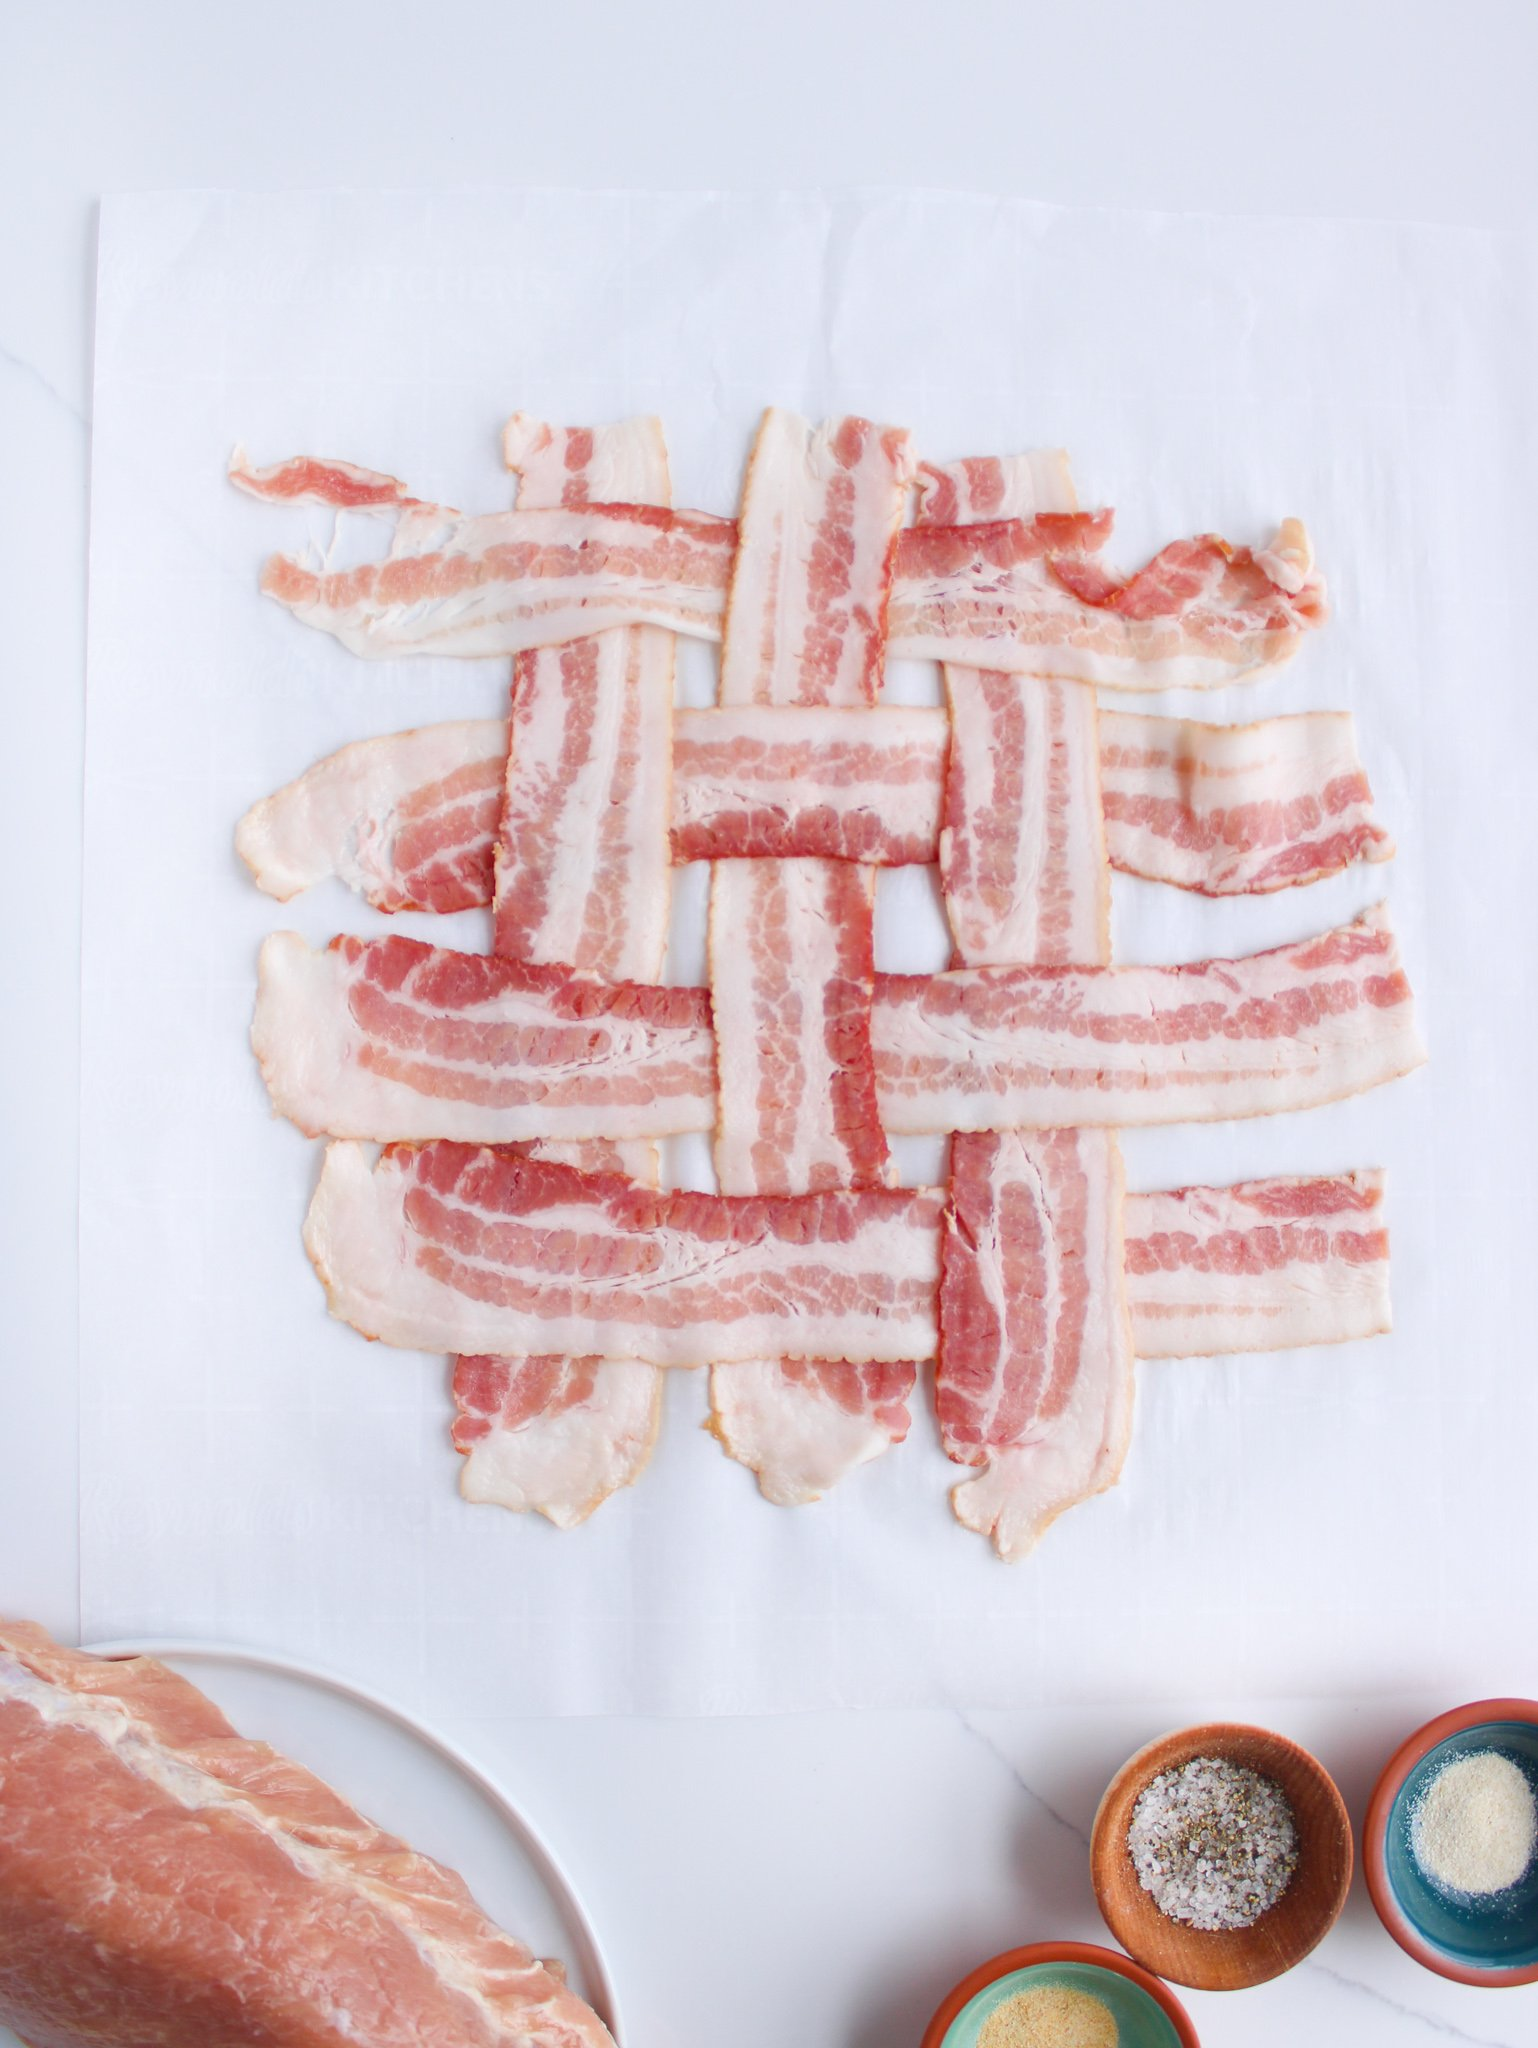 Basket weave of bacon on parchment paper about to be par cooked before being wrapped around the pork loin.